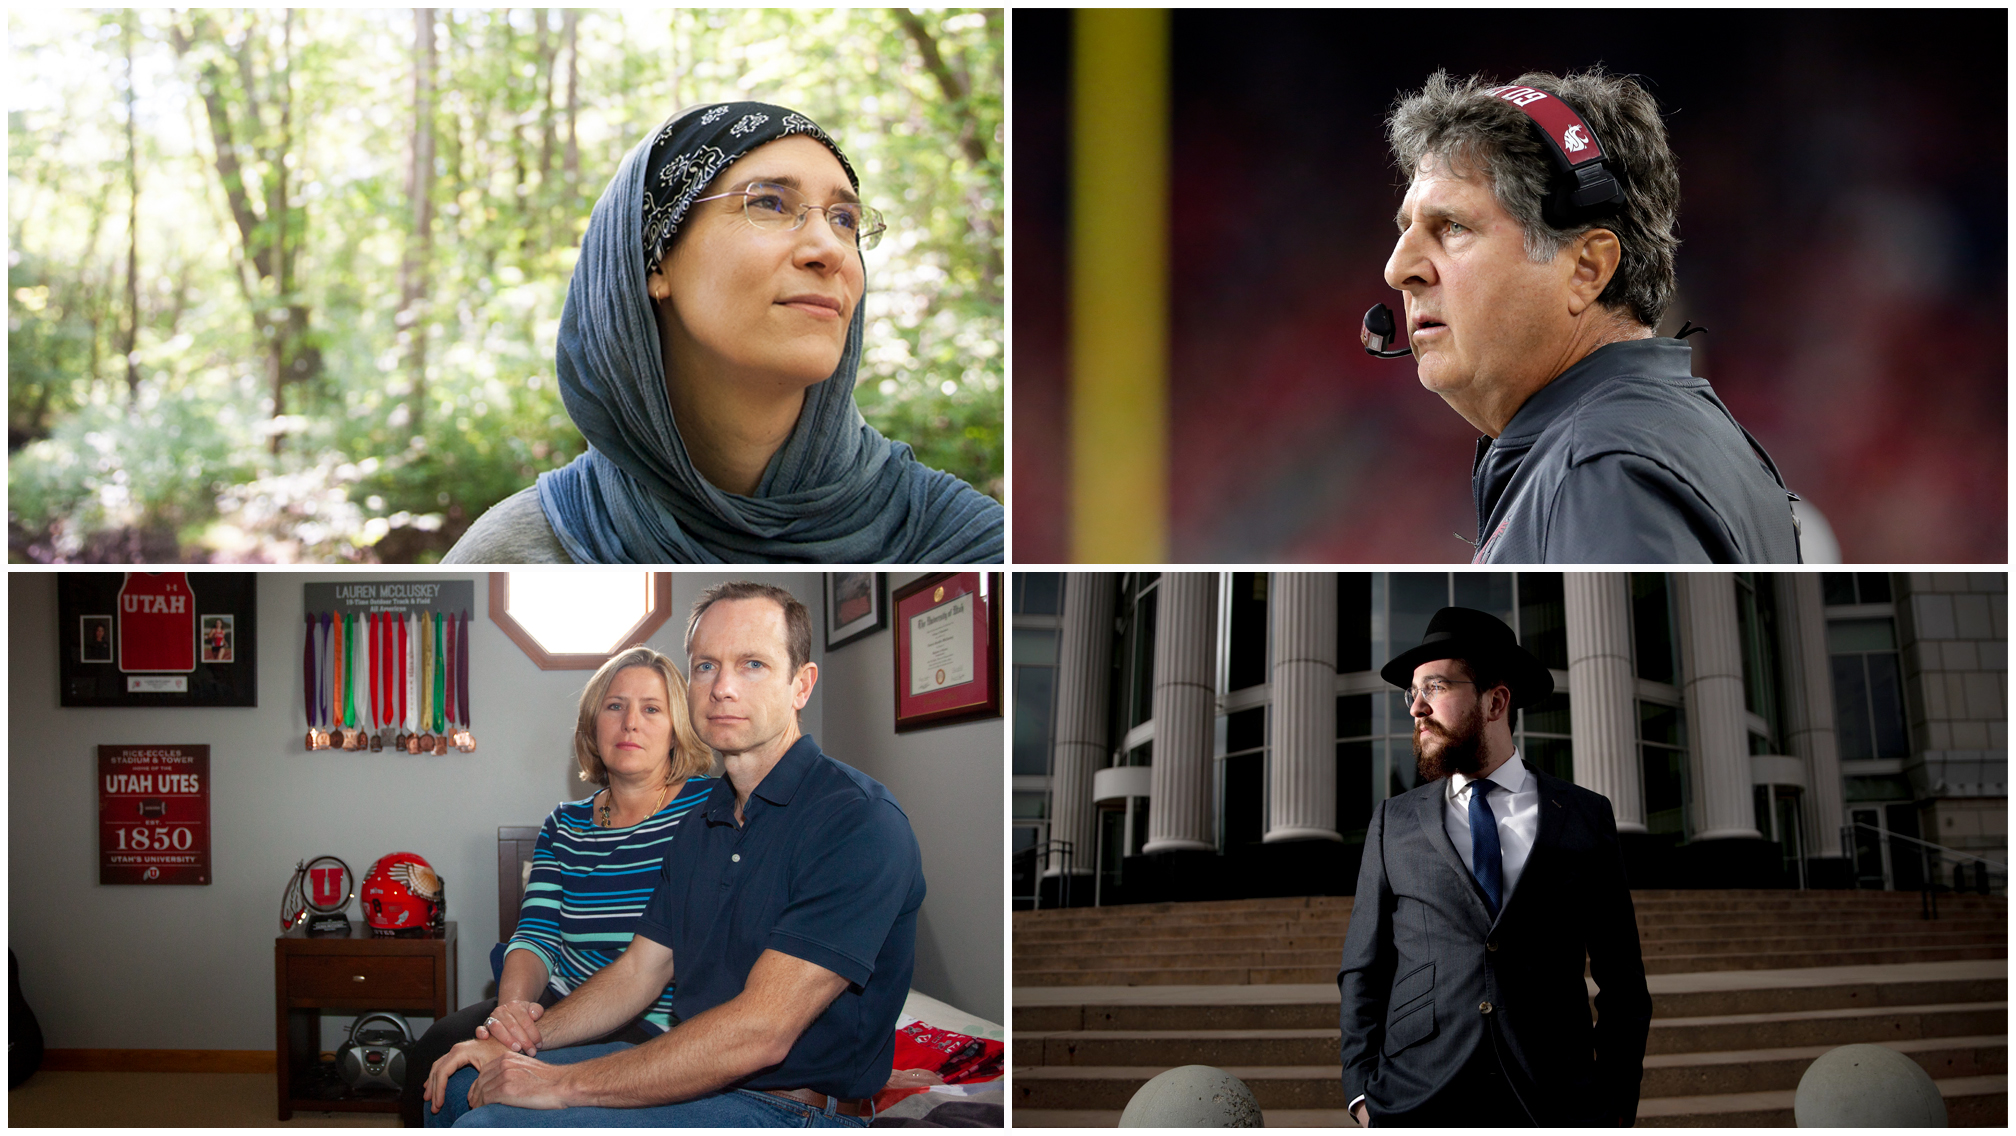 Clockwise from top left, Green Muslims Executive Director Sevim Kalyoncu, Washington State football coach Mike Leach, Rabbi Avremi Zippel, and Matt and Jill McCluskey share their New Year's resolutions with the Deseret News.